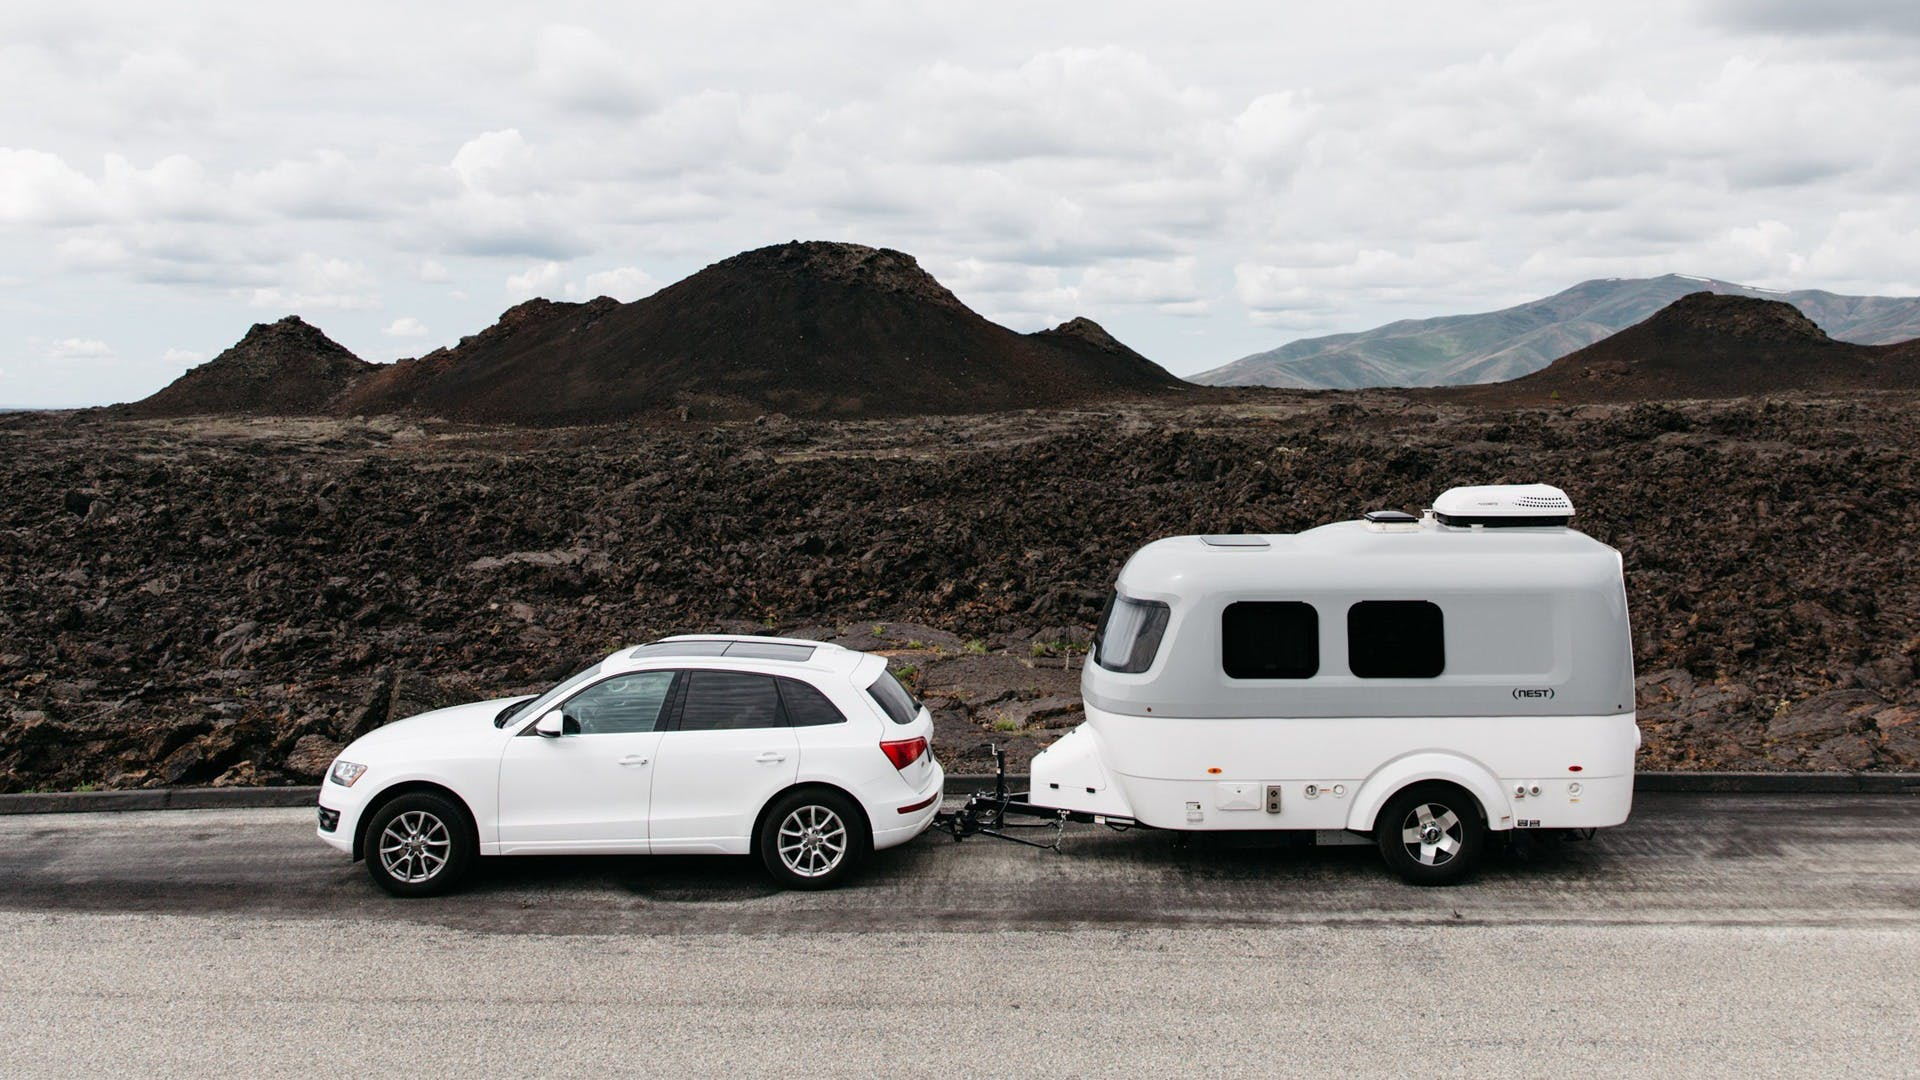 Airstream Travel Trailer Nest Audi Q3 SUV towable Road